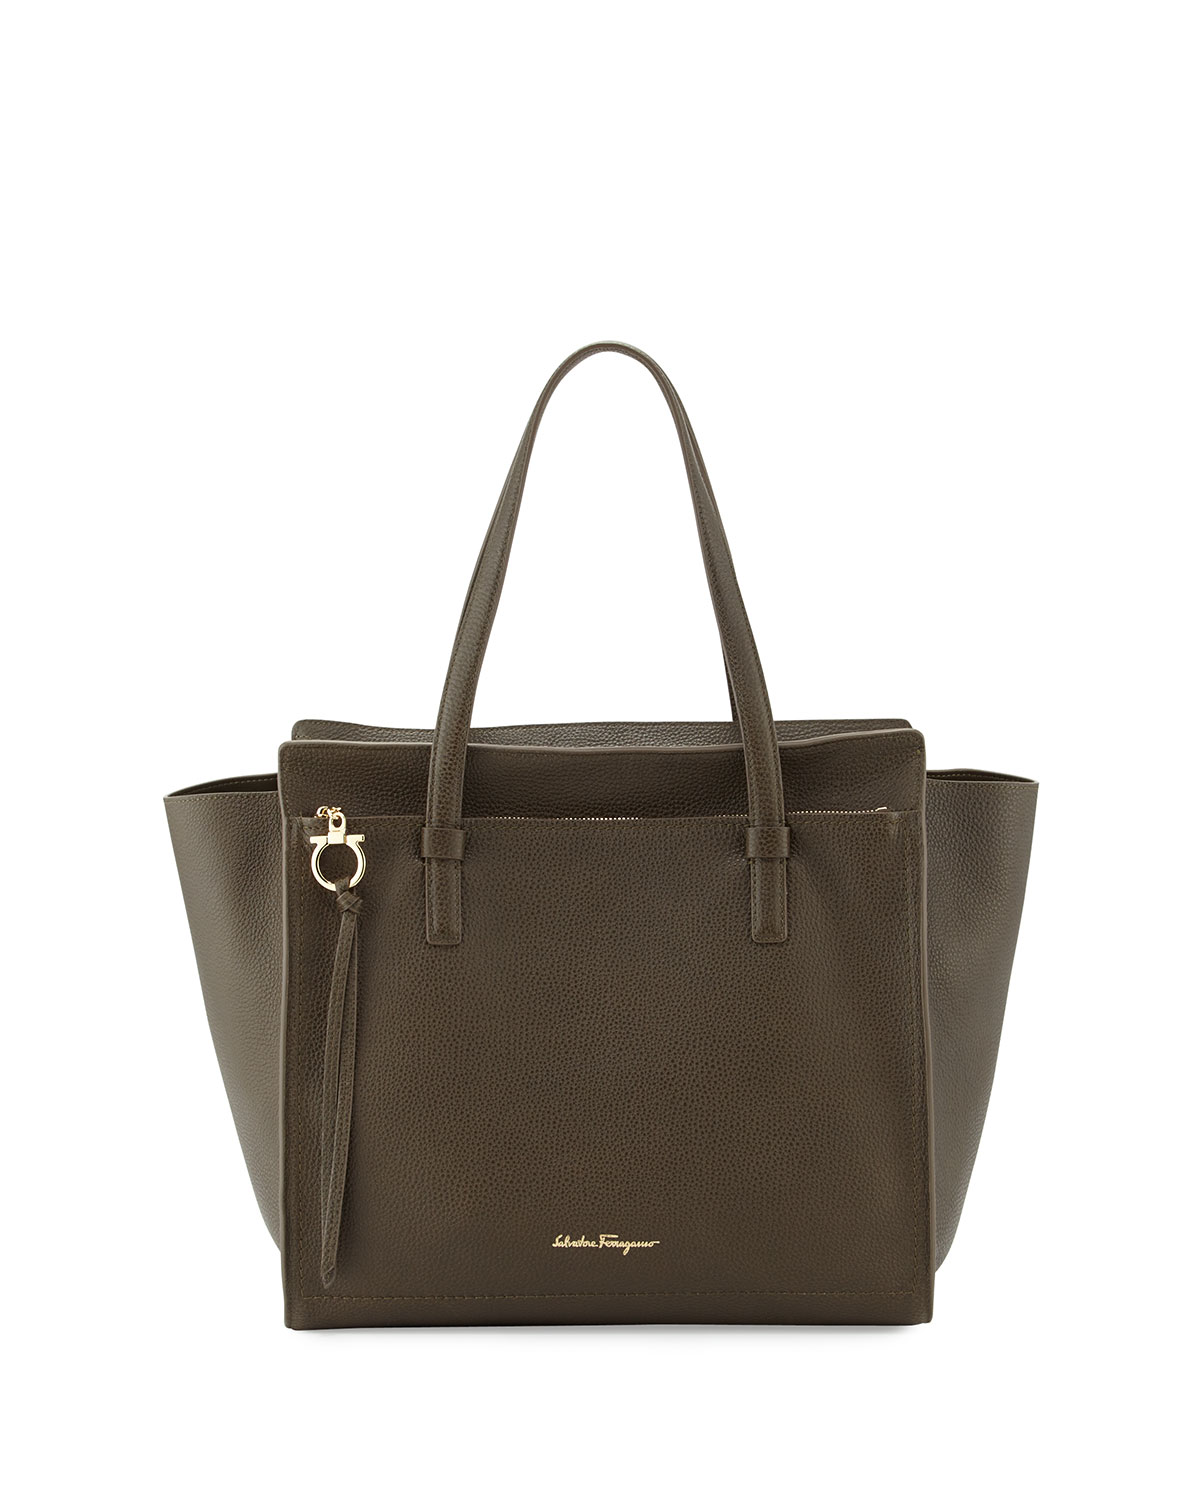 e1f539c09c6b Salvatore Ferragamo Amy Large Gancio Leather Shopper Tote Bag ...